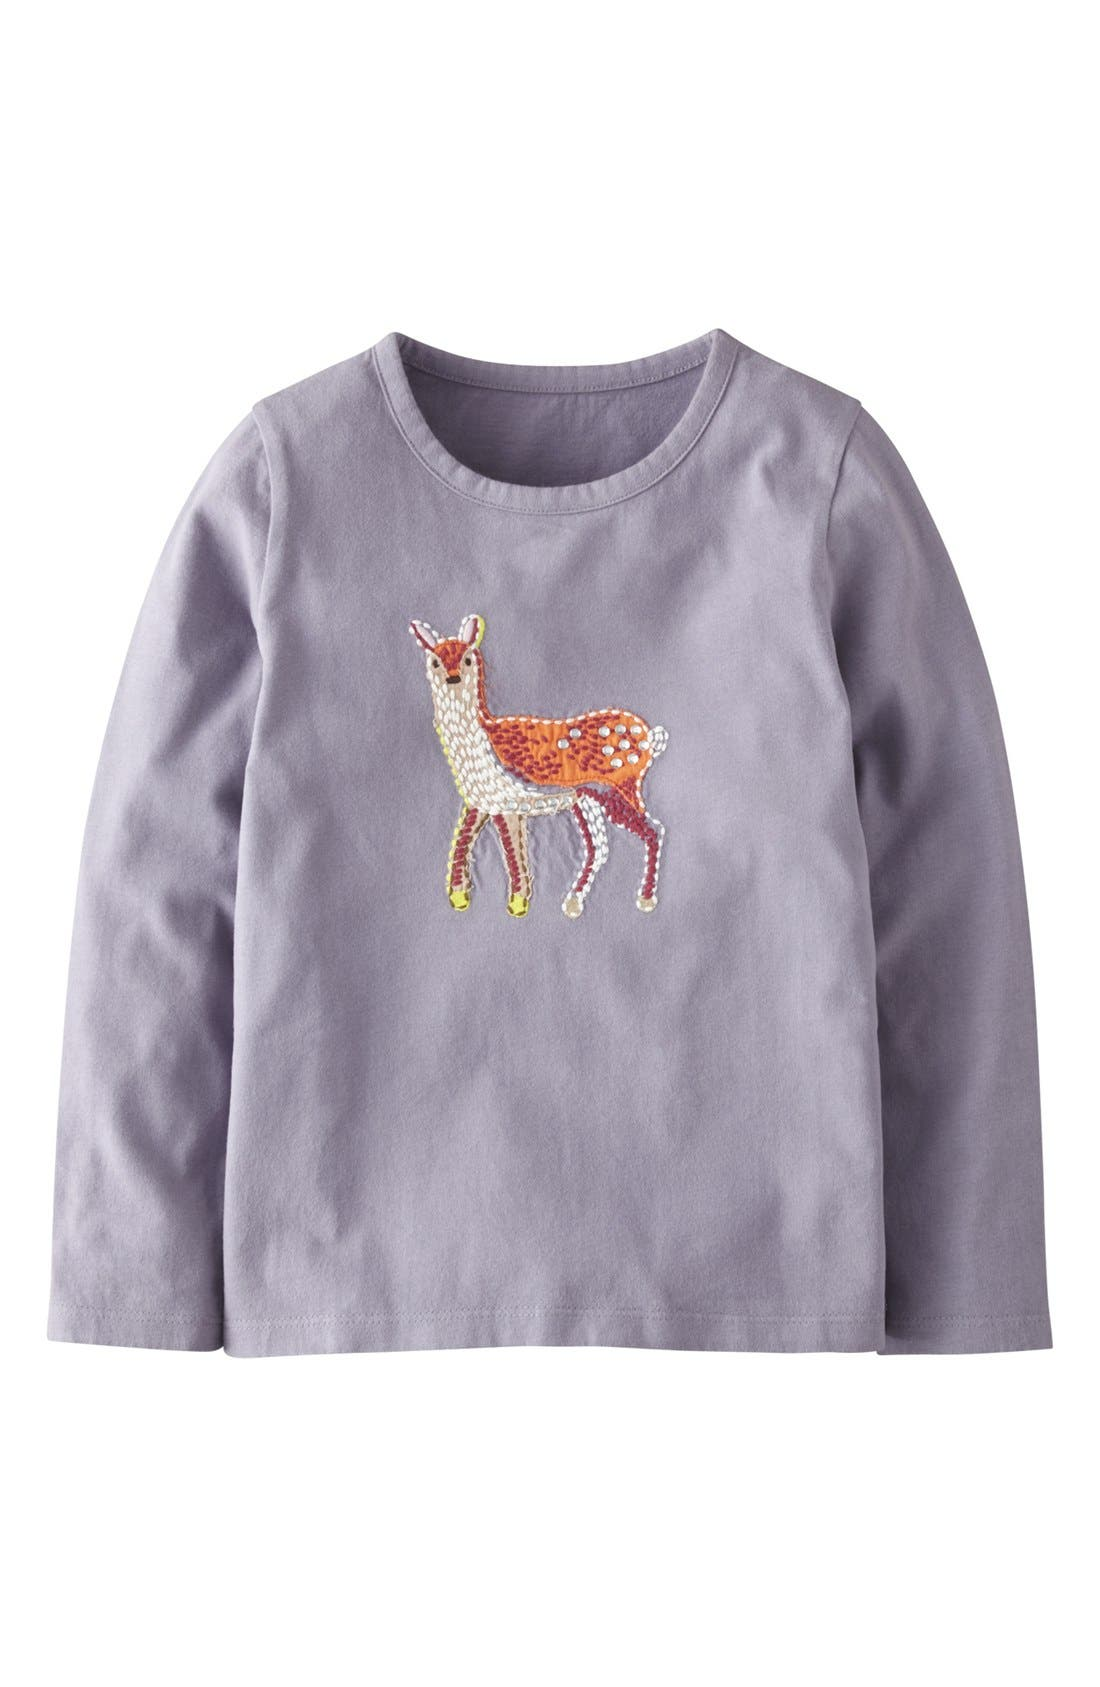 Main Image - Mini Boden 'Woodland' Appliqué Long Sleeve Tee (Toddler Girls, Little Girls & Big Girls)